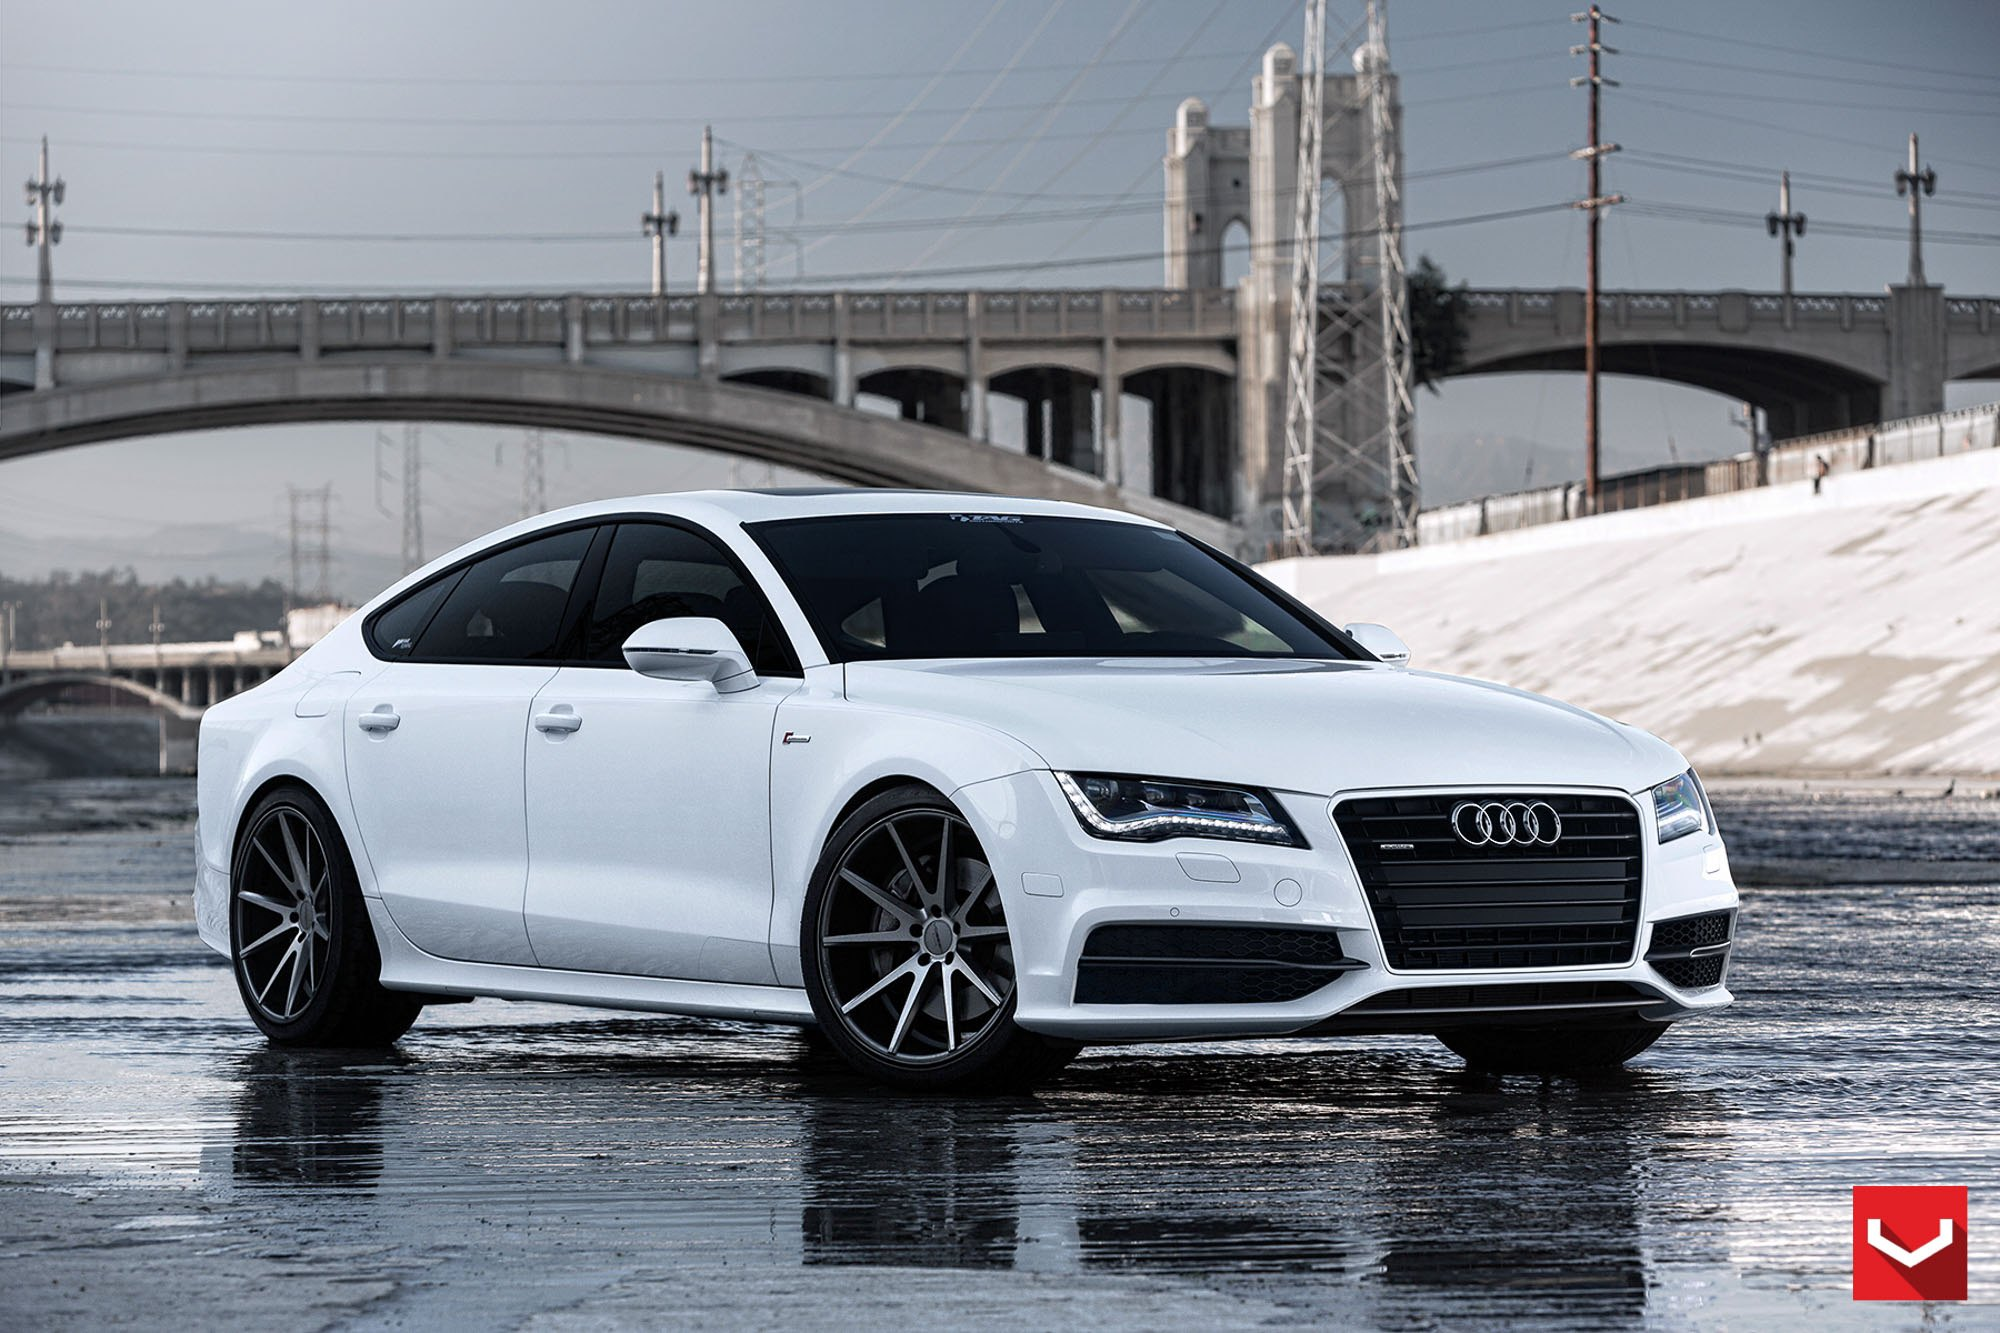 White Audi A7 Slightly Customized with Parts — CARiD.com Gallery